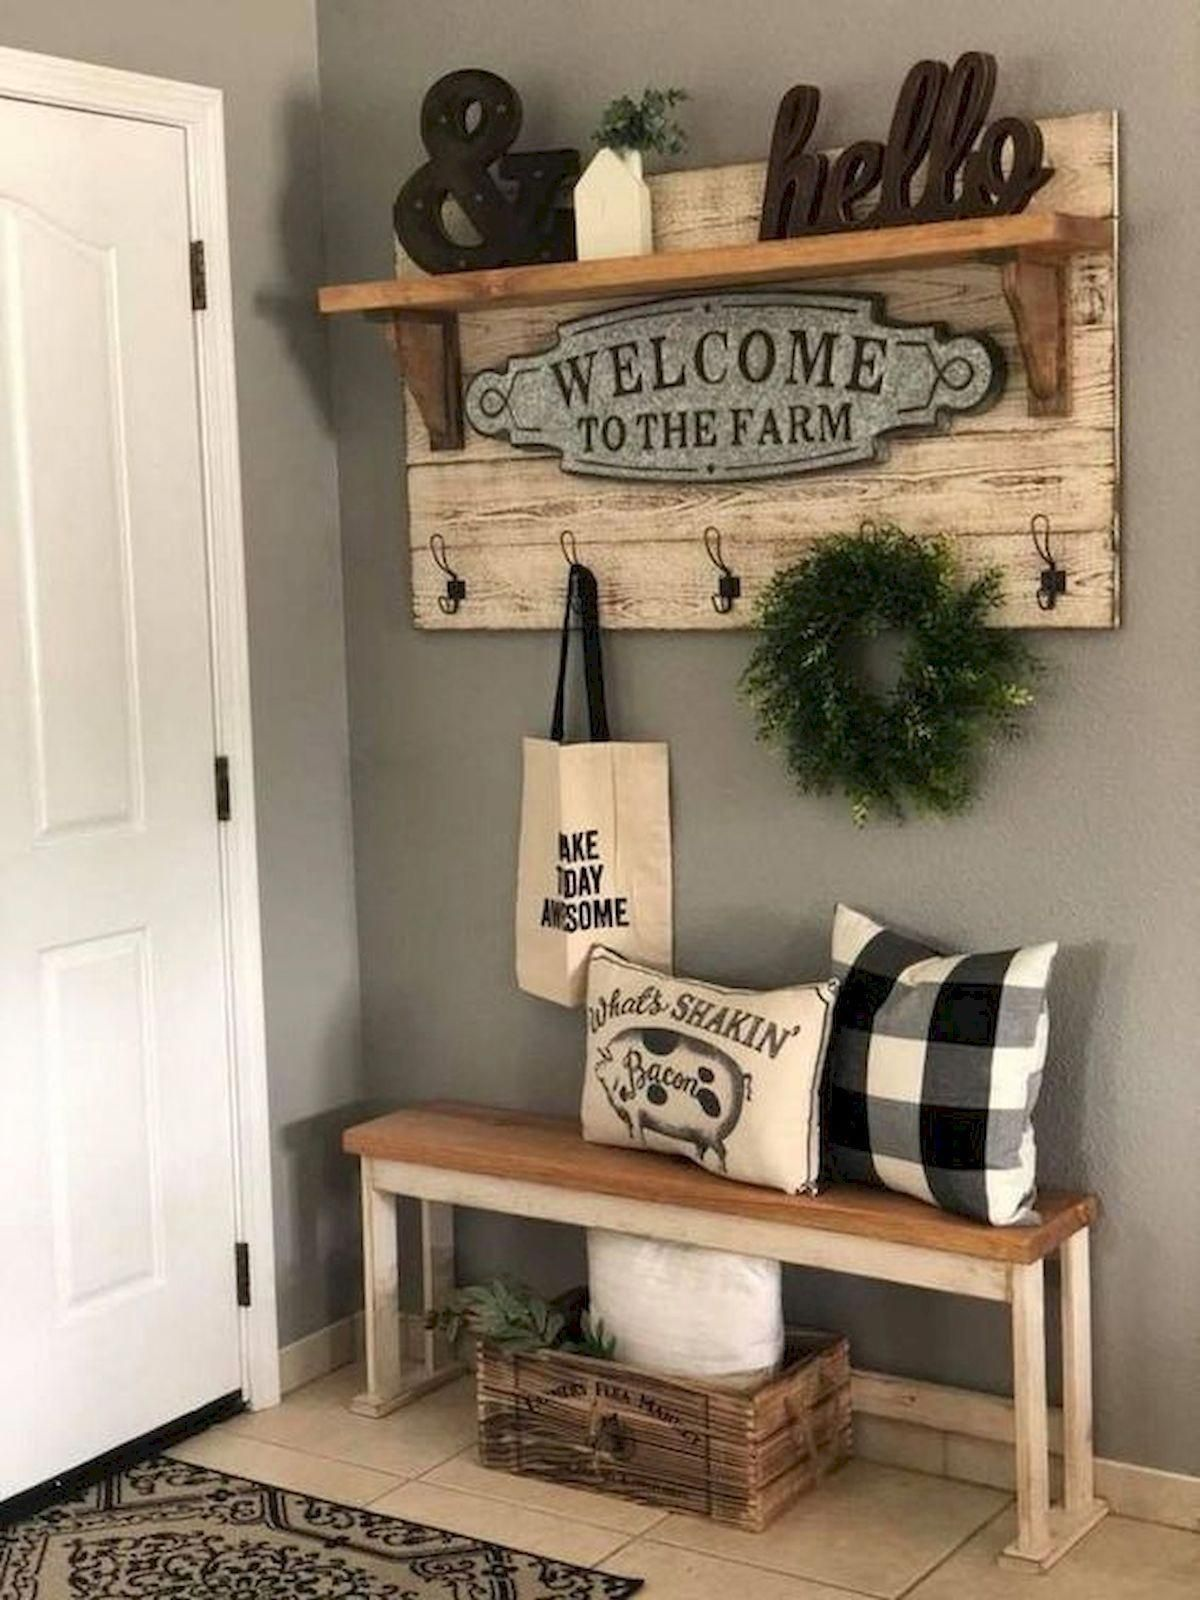 Home Decor Ideas Pinterest Home Decor Ideas Living Room Pinterest Home Decor Ideas For Christmas Home D Farmhouse Wall Decor Decor Farmhouse Decor Living Room